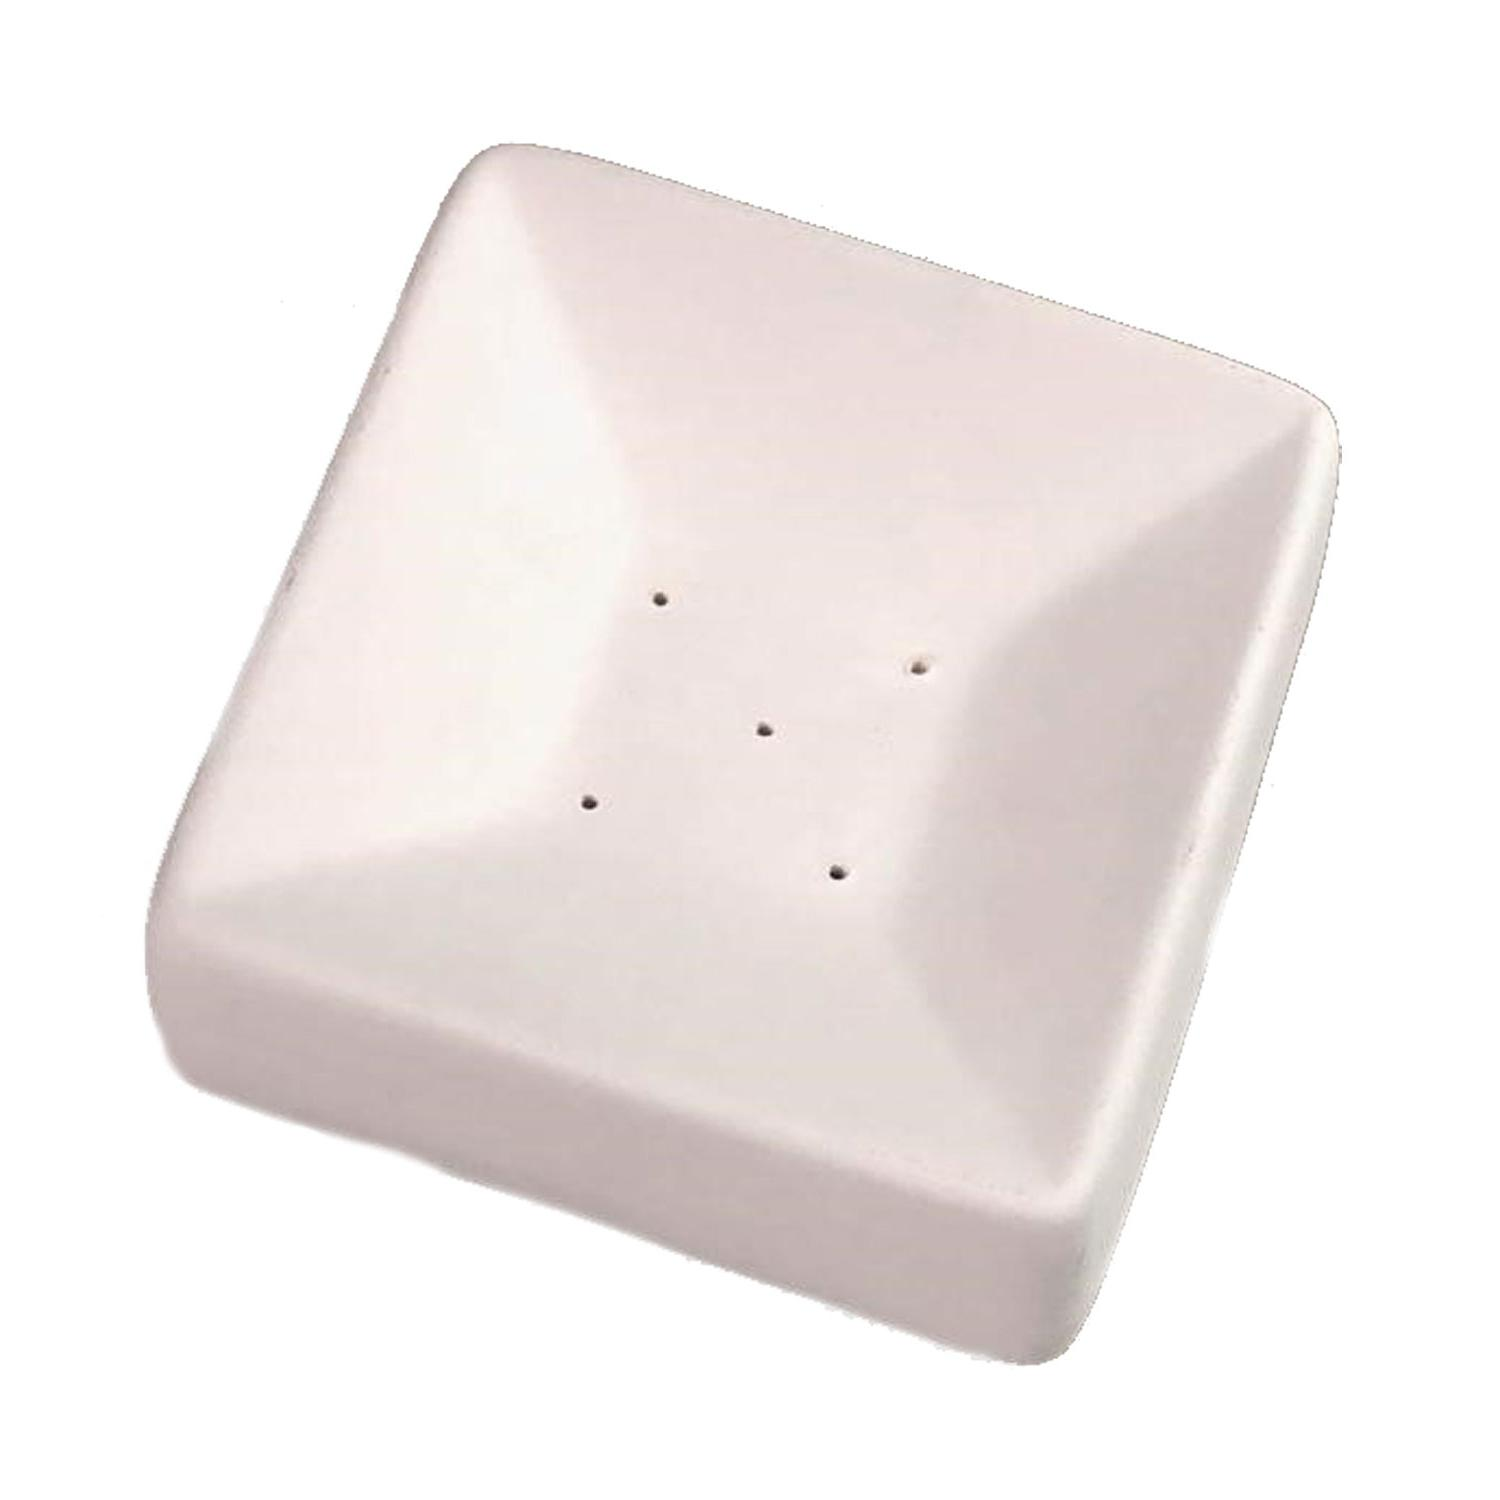 3-1/2 Small Square Sided Slumper Mold